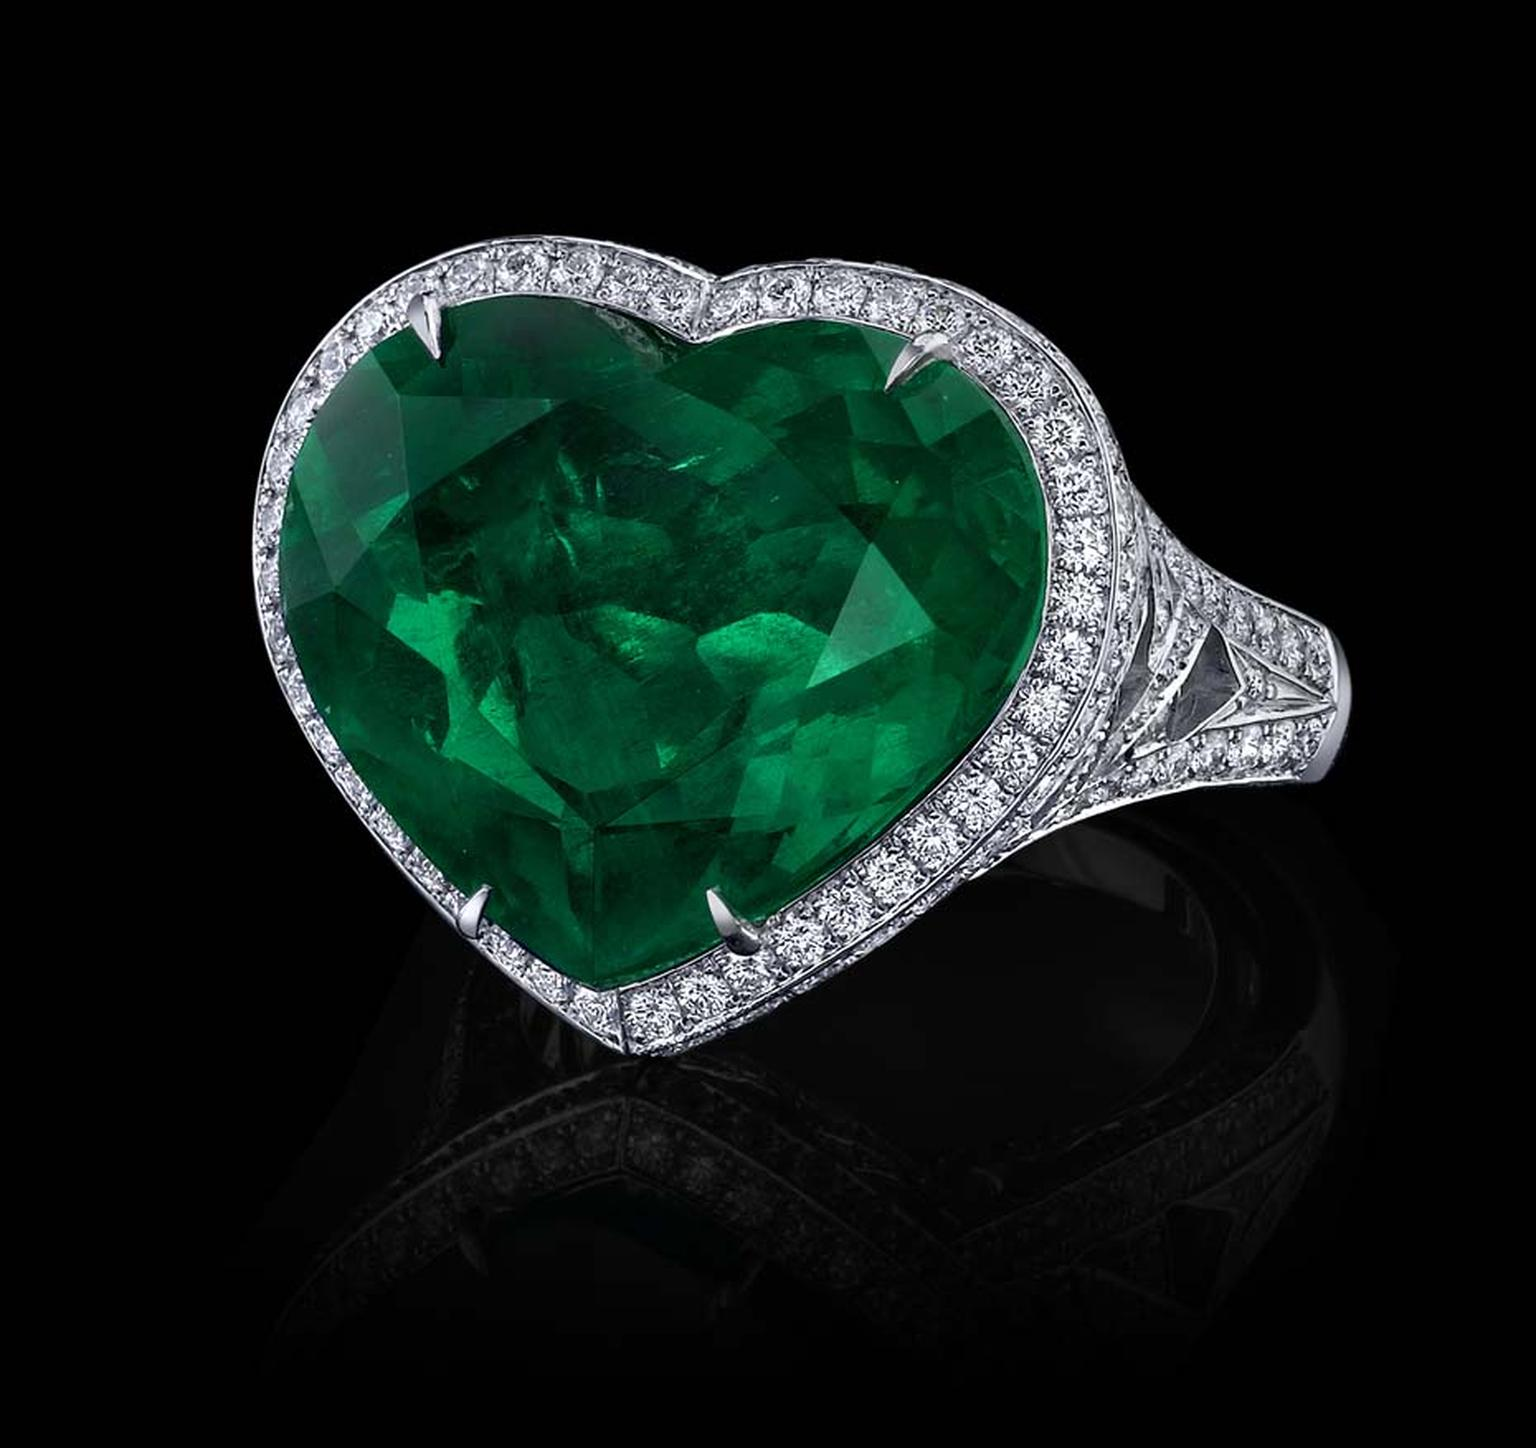 Robert Procop's heart-shaped emerald engagement ring.